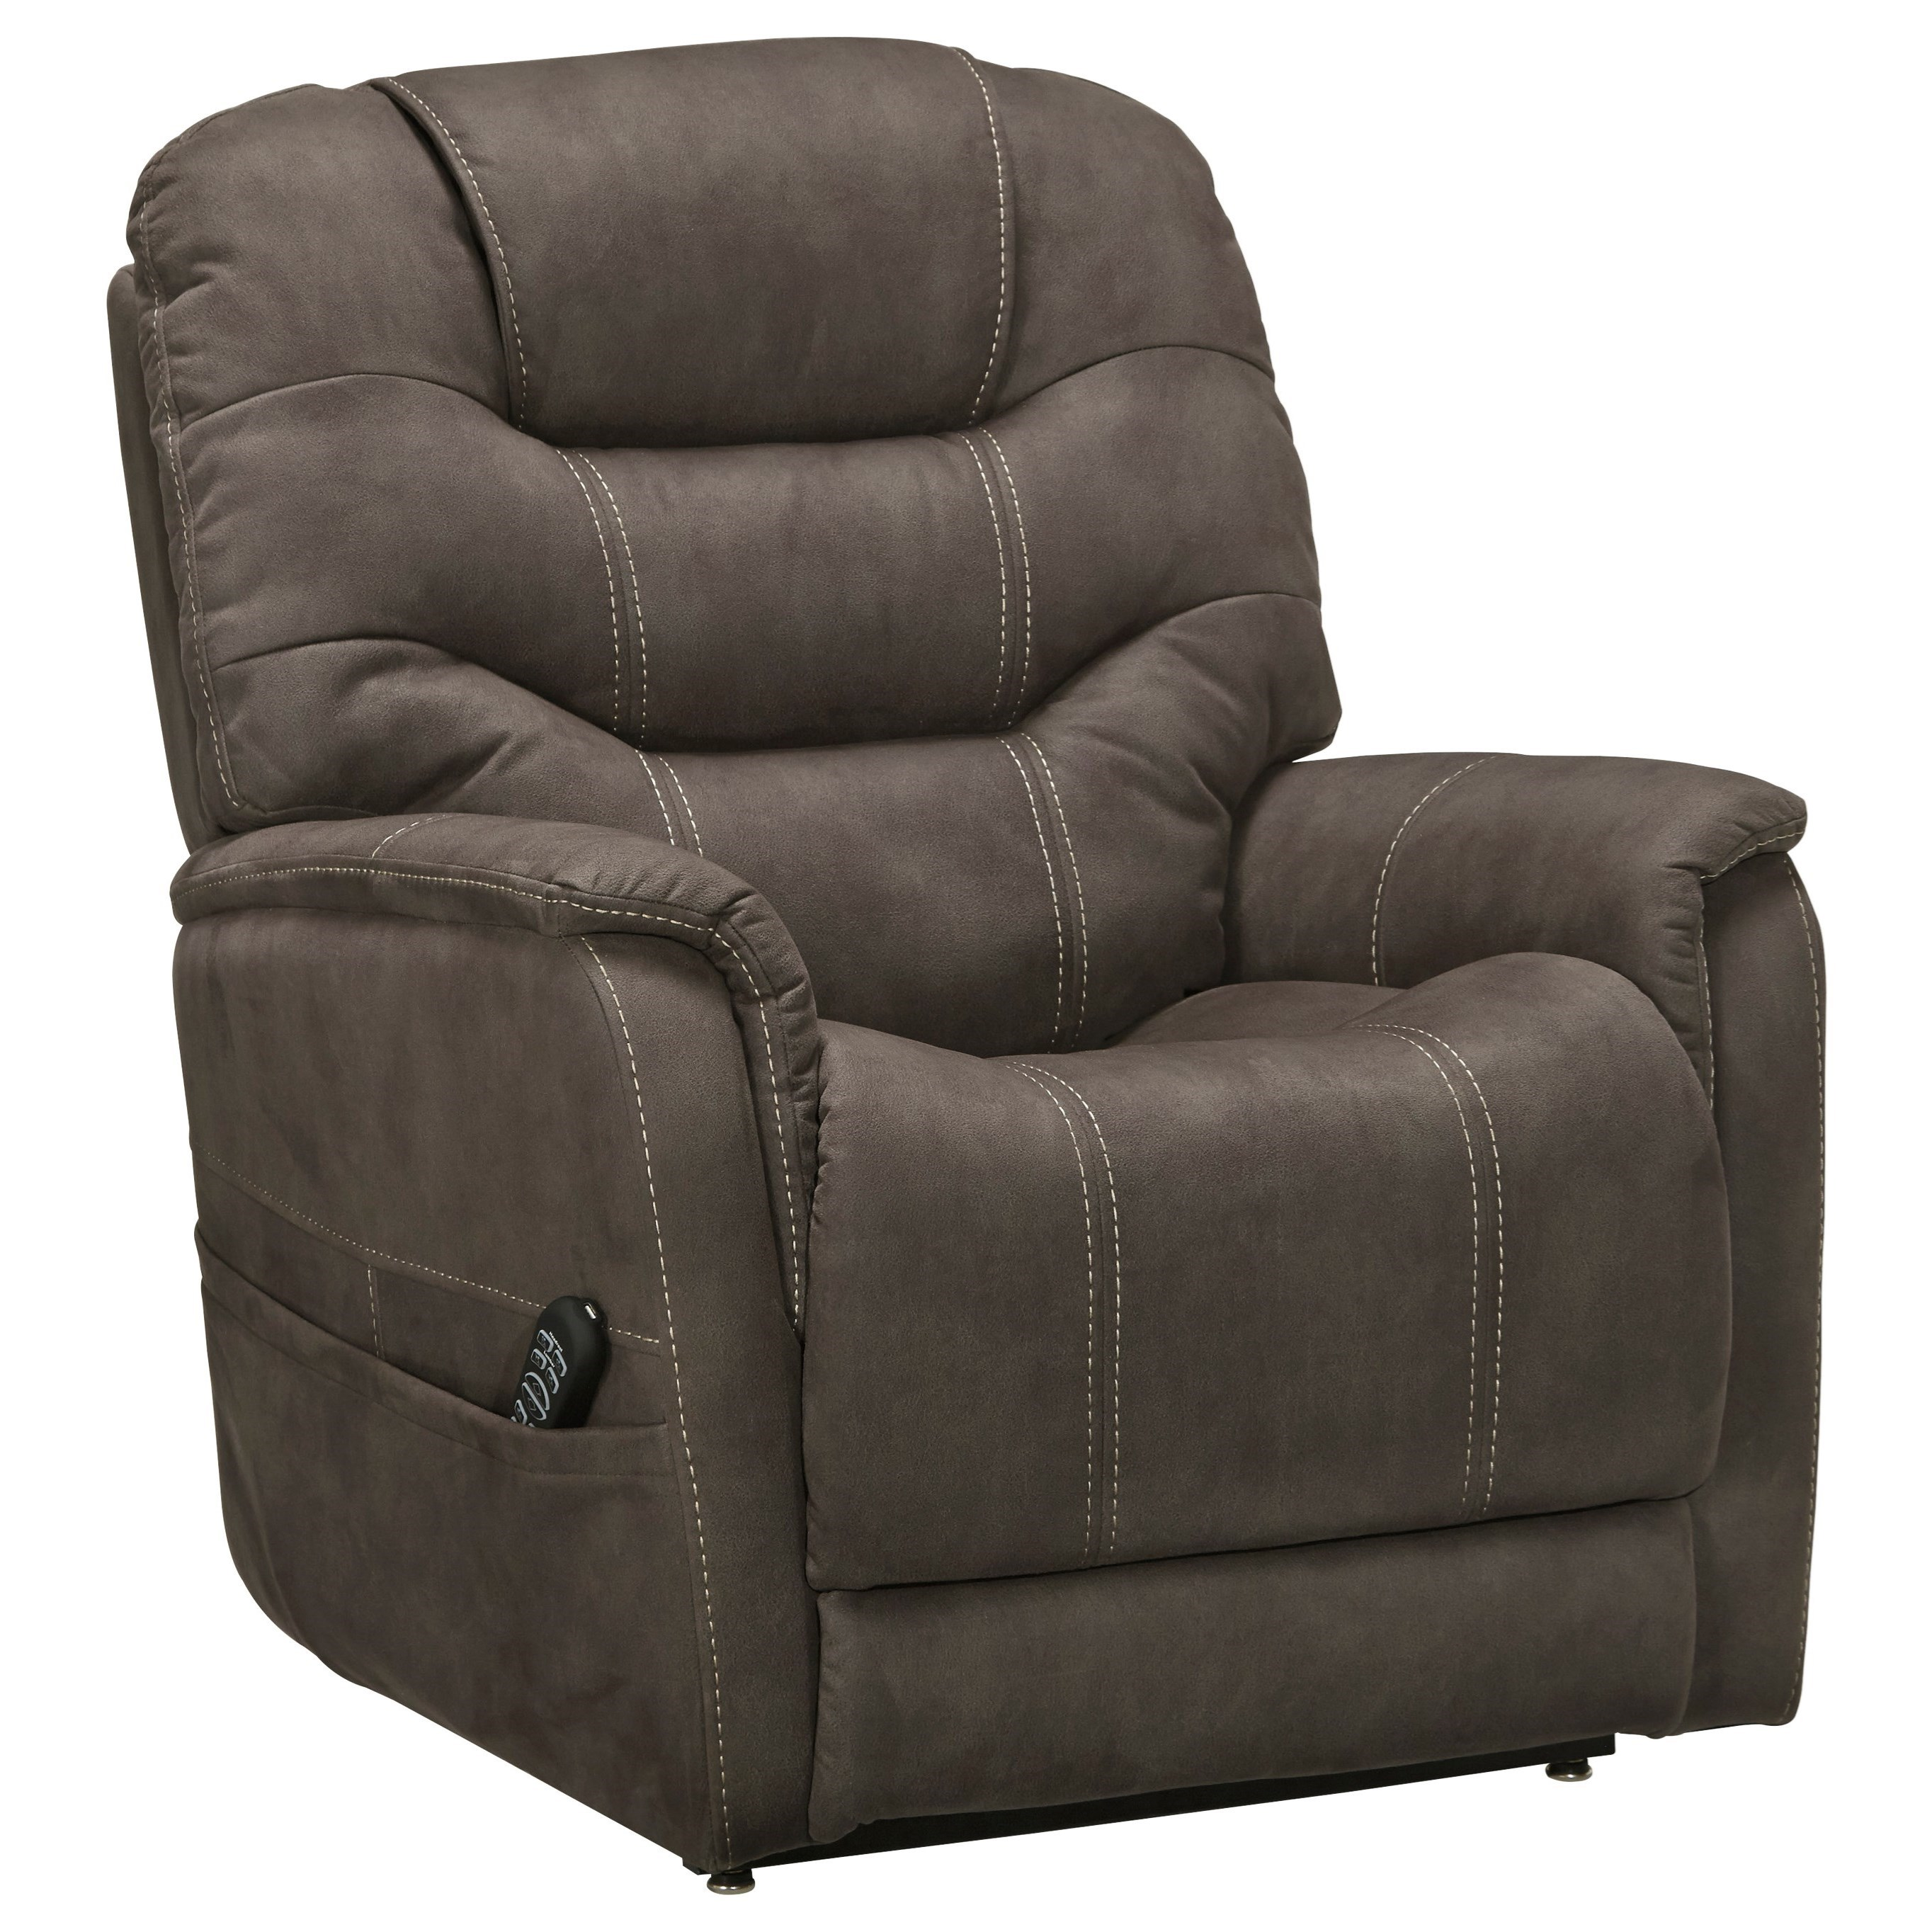 Ballister Power Lift Recliner by Signature Design by Ashley at Beck's Furniture